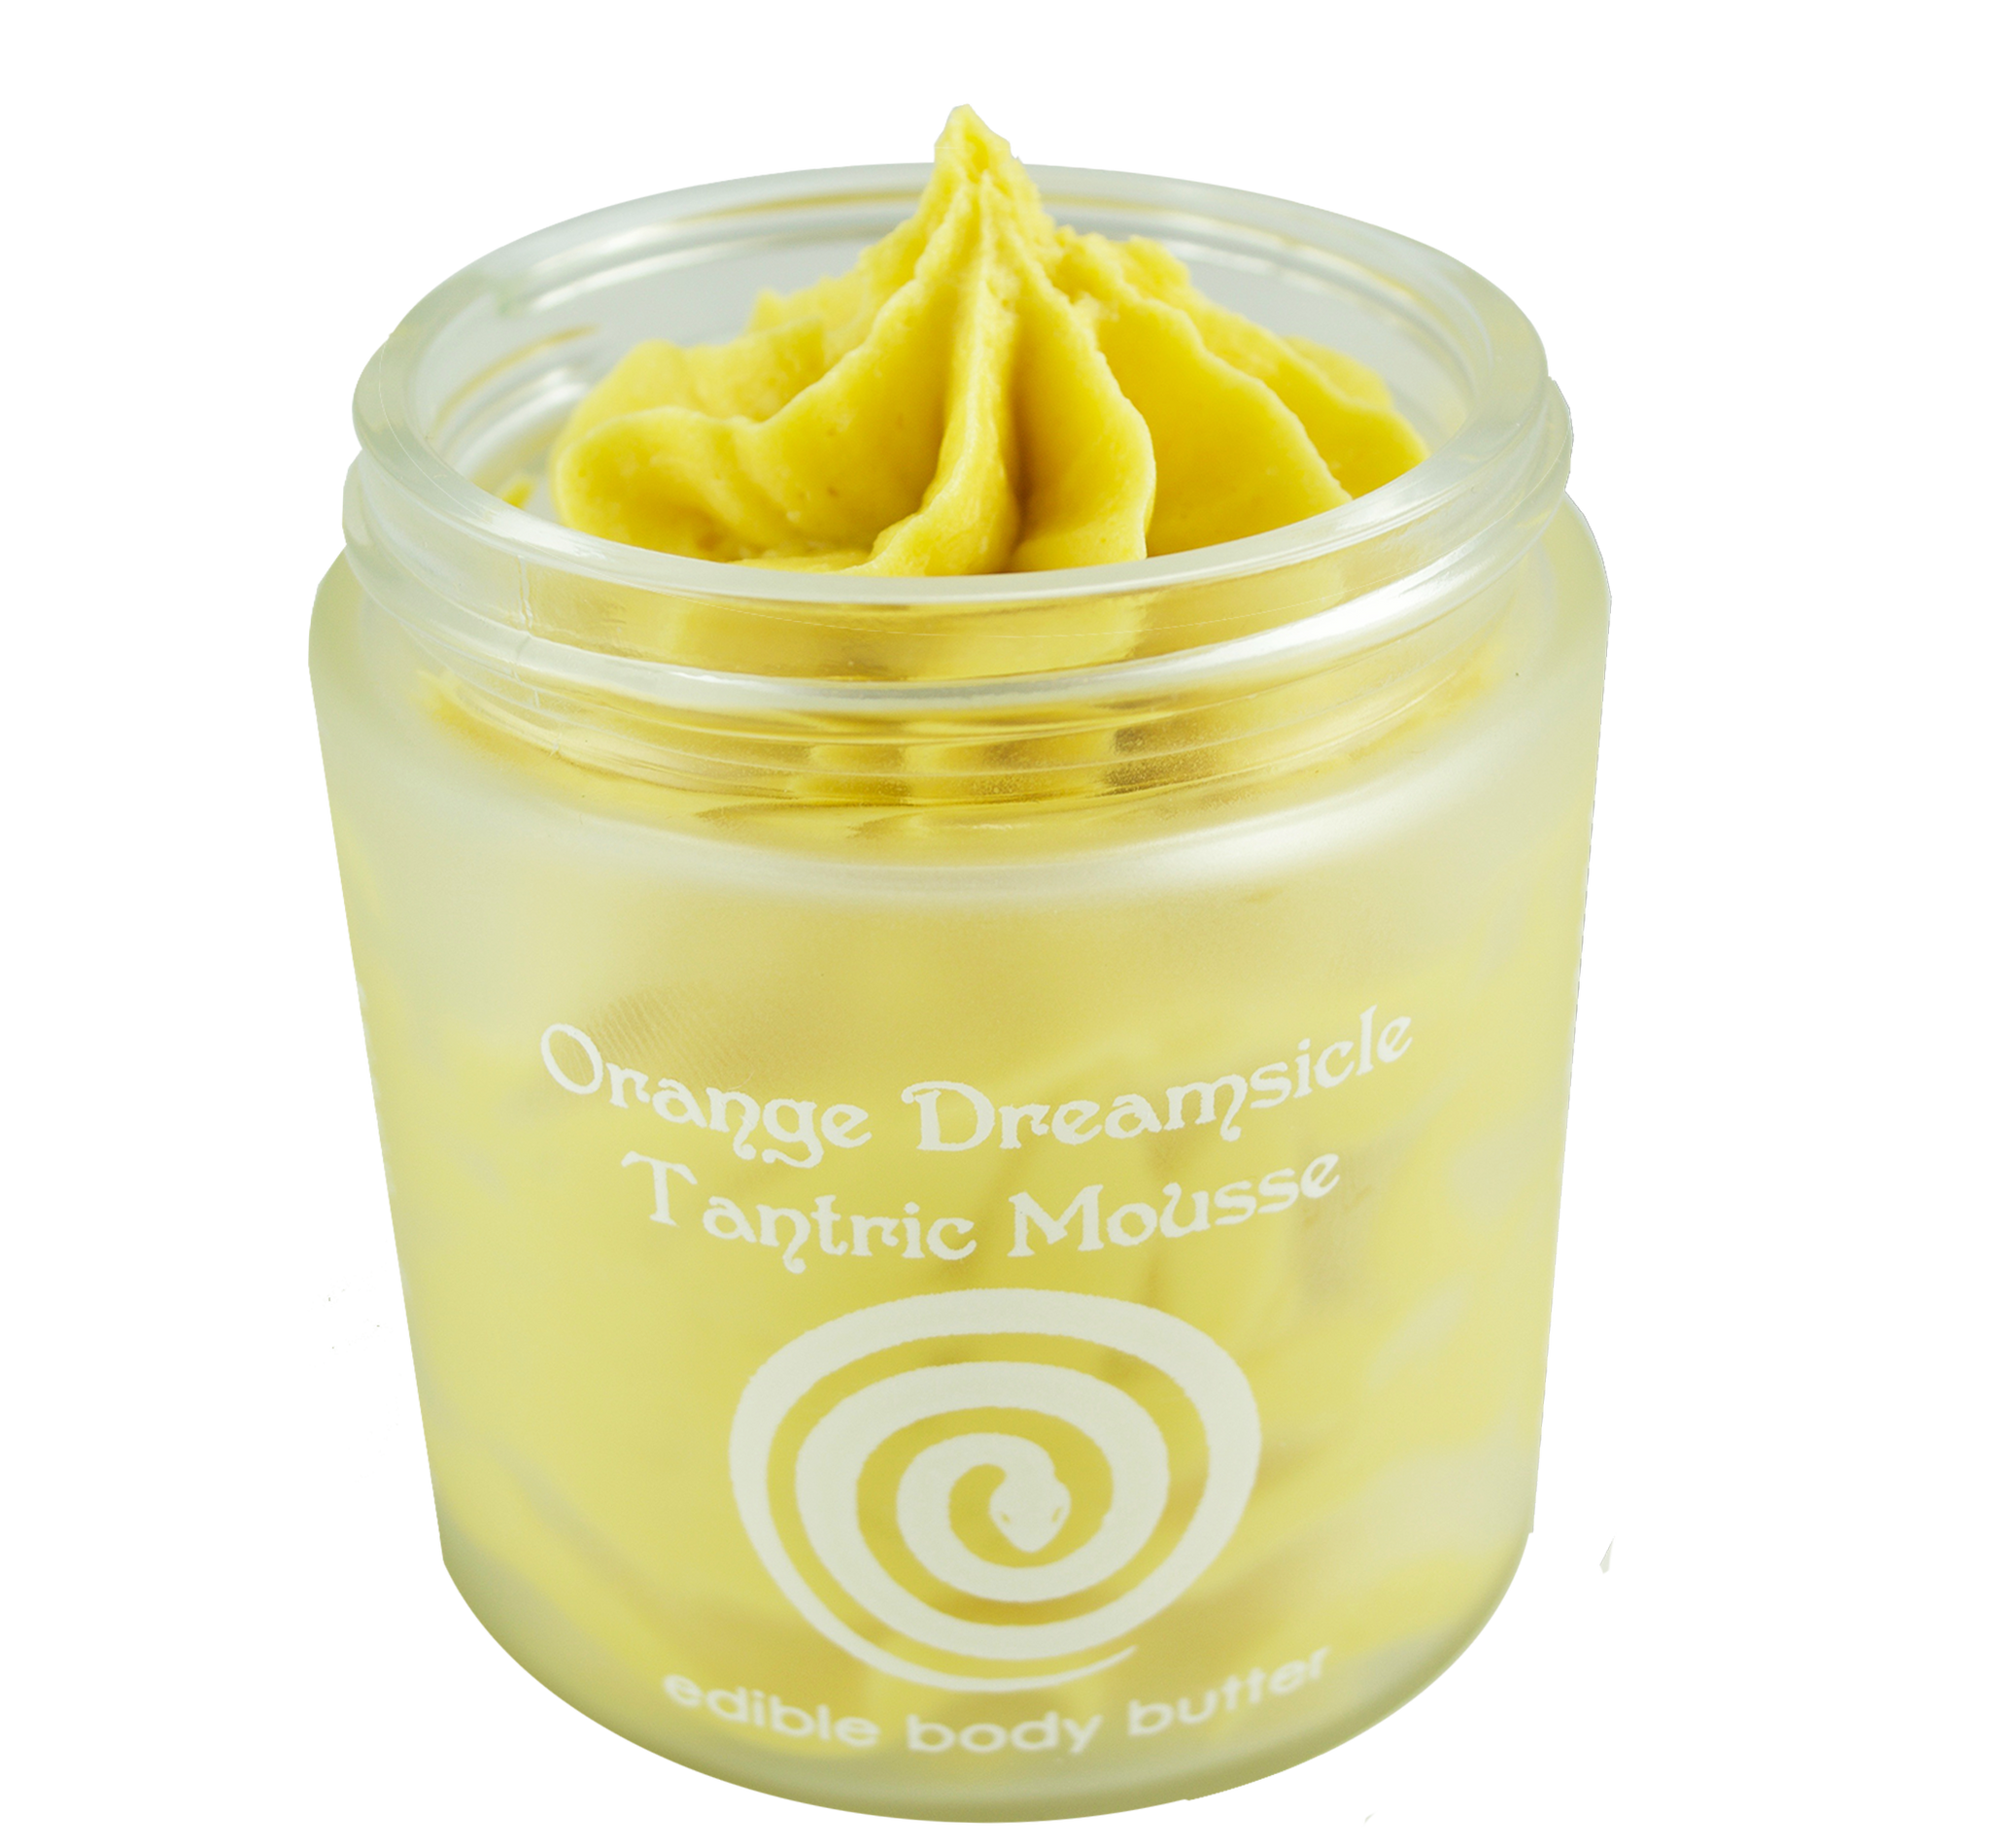 Tantric Mousse ~ orange dreamsicle